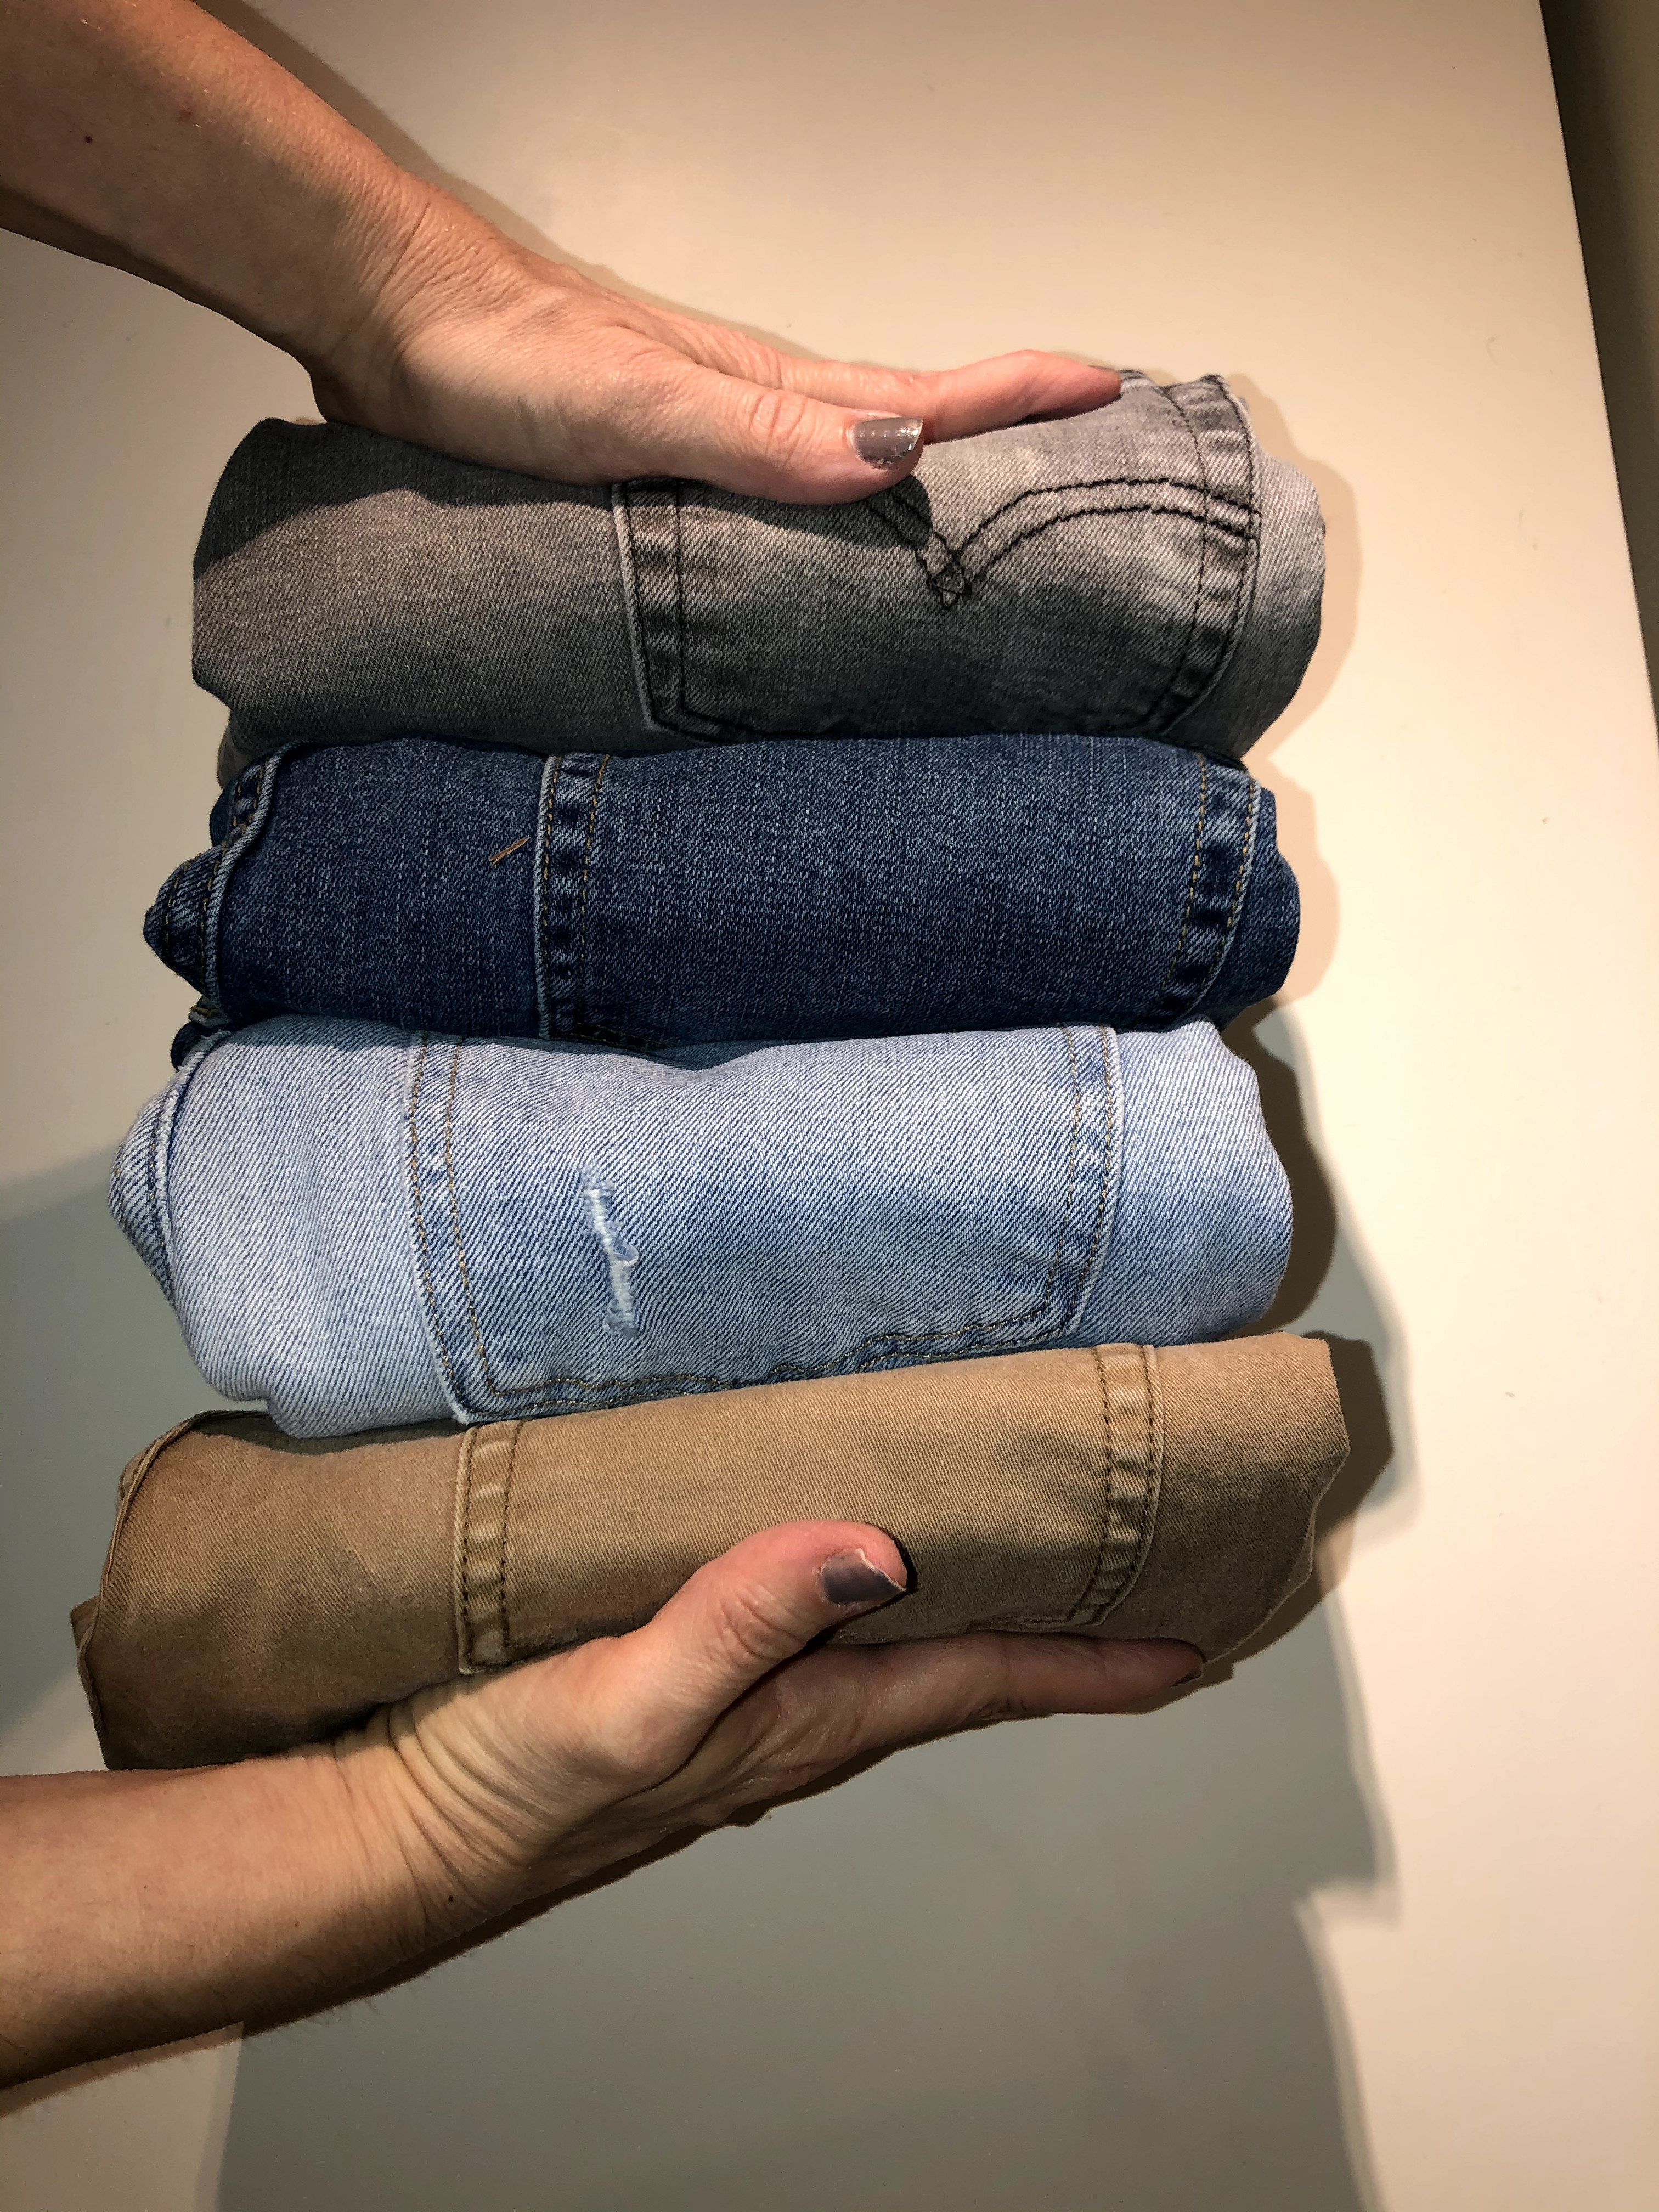 Jeans folding TIP. In order to fold jeans all you need is a shelf. fold it vertically.